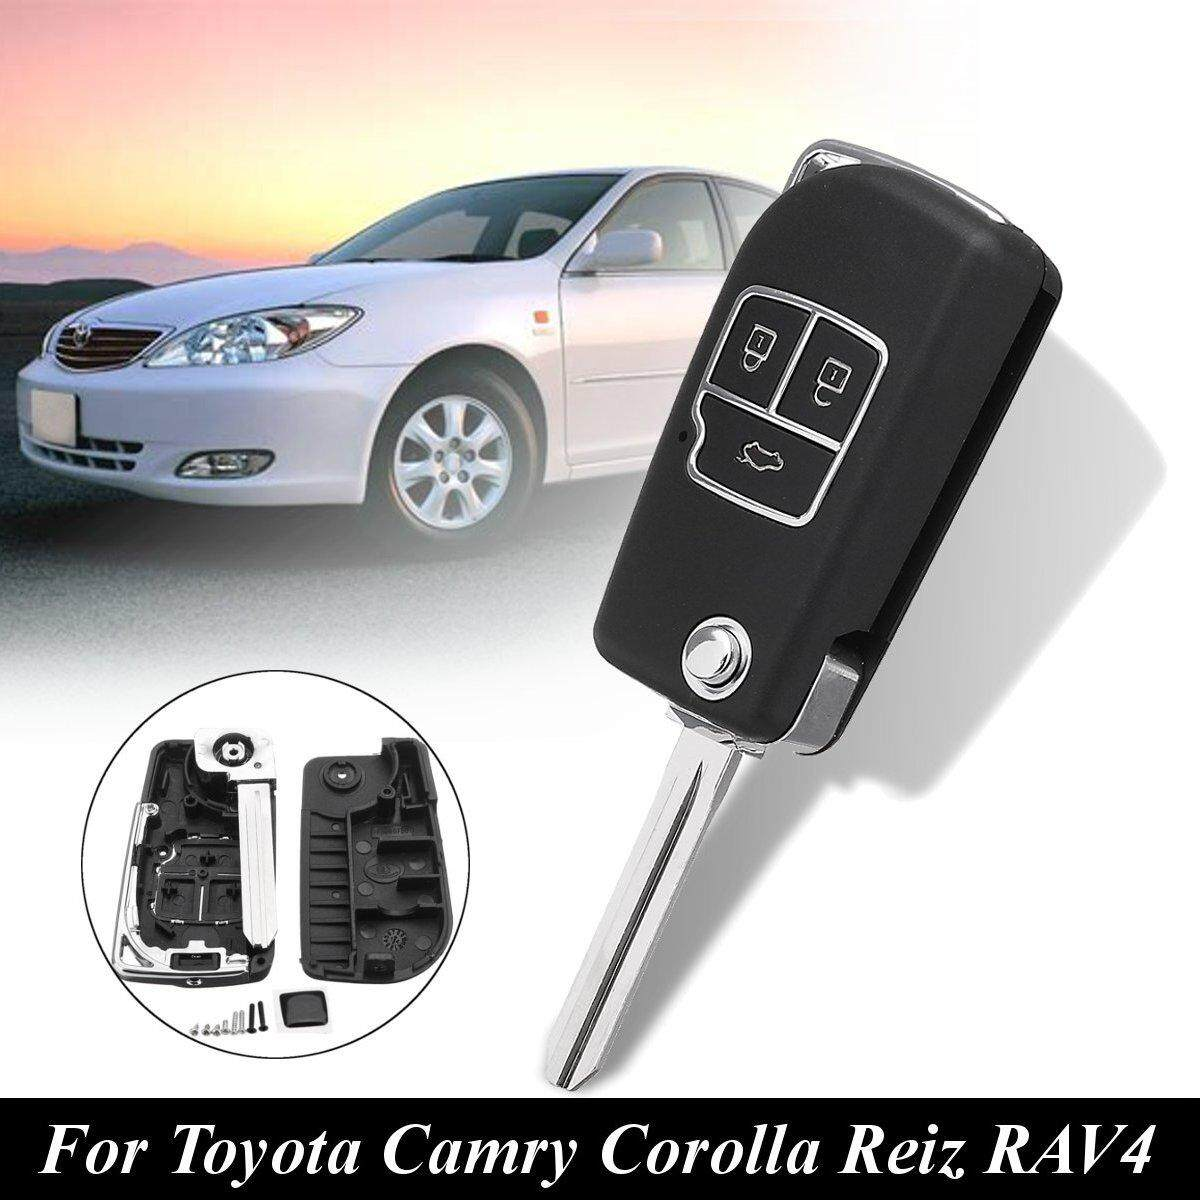 Keyless Entry For Sale Car Online Brands Prices 99 Civic Ignition Wiring Diagram 3 Buttons Remote Key Case Shell W Blade Toyota Camry Corolla Reiz Rav4